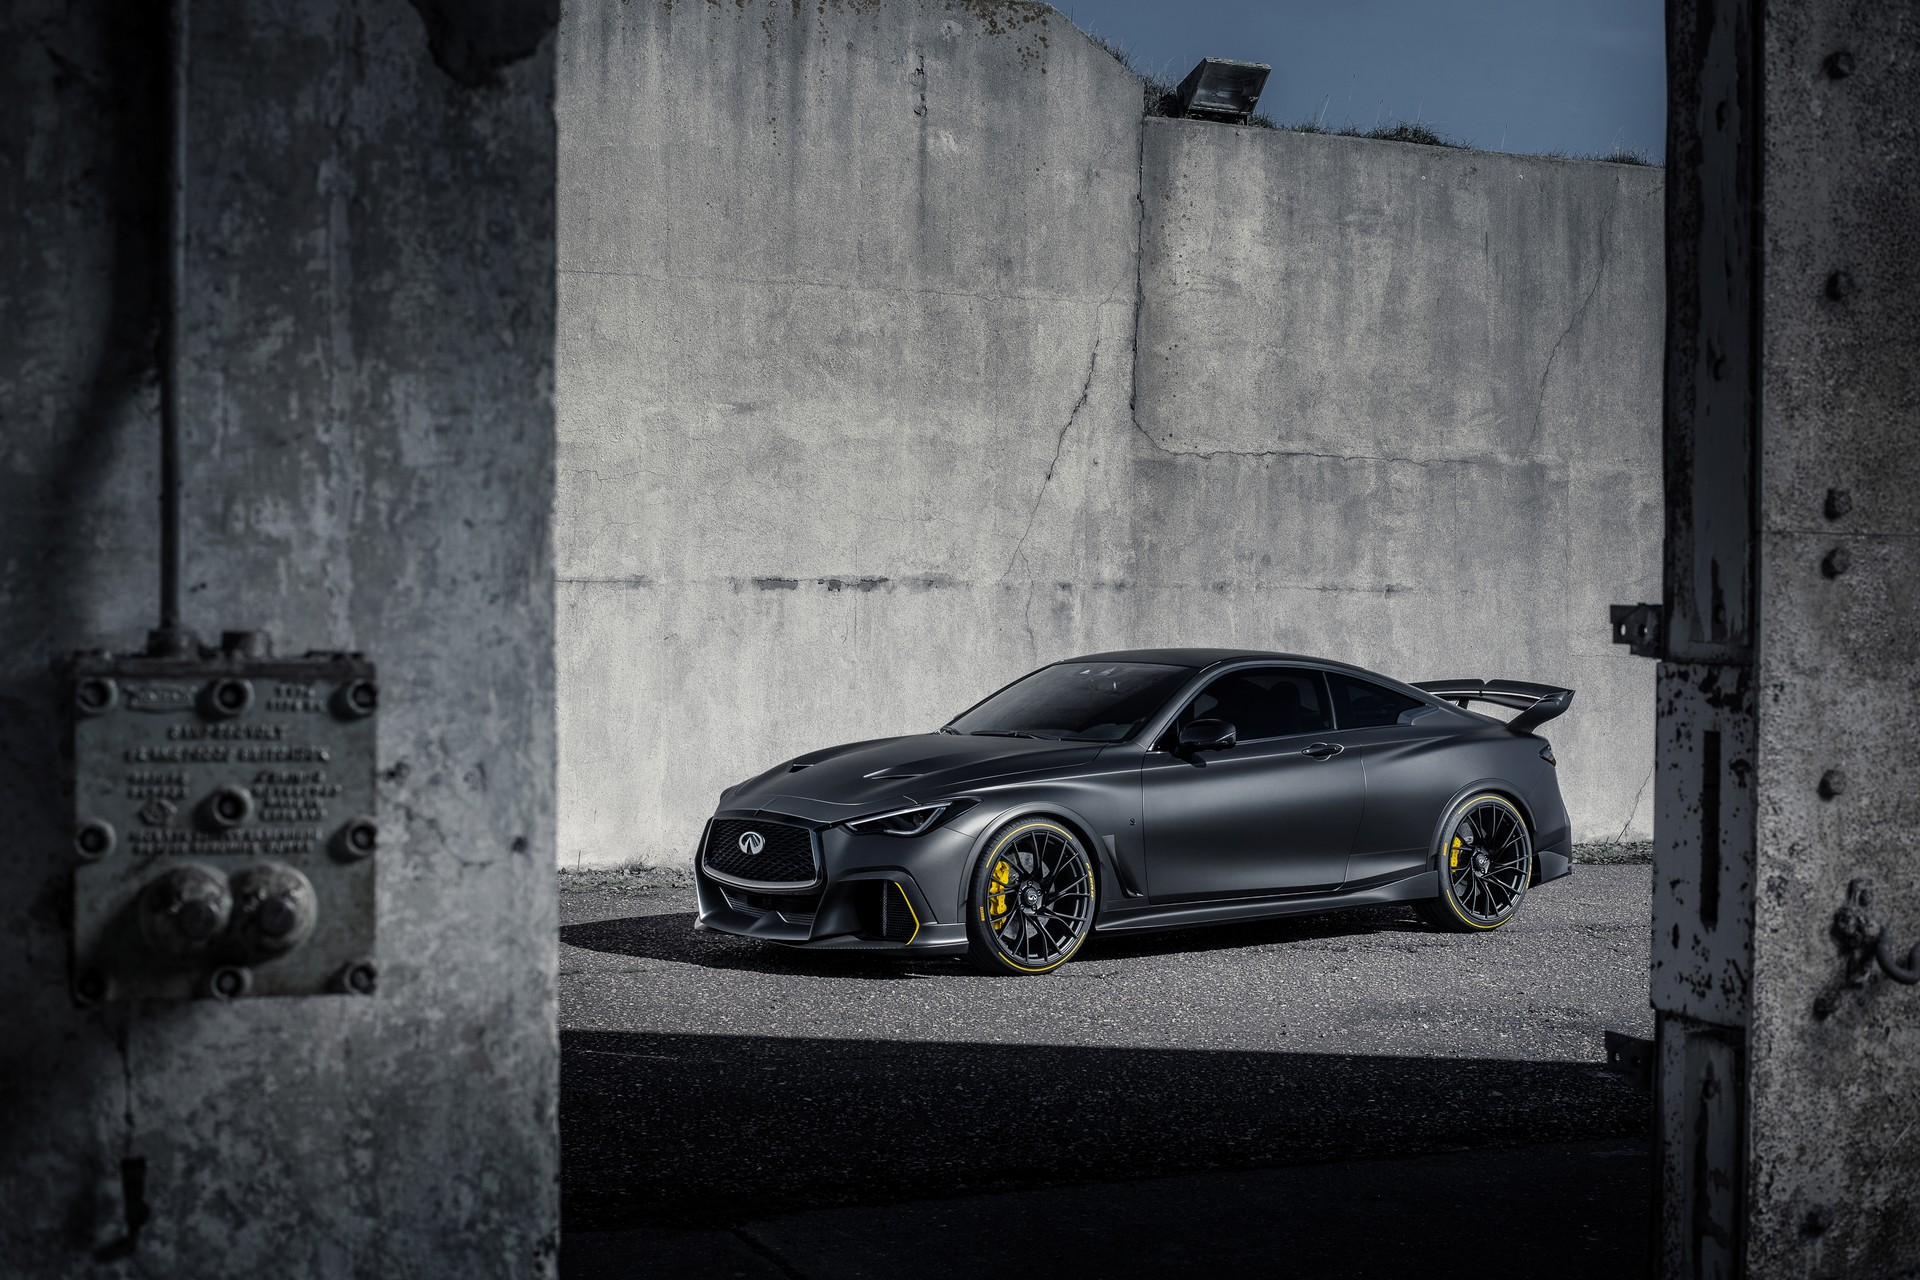 Infiniti Project Black S Prototype (3)